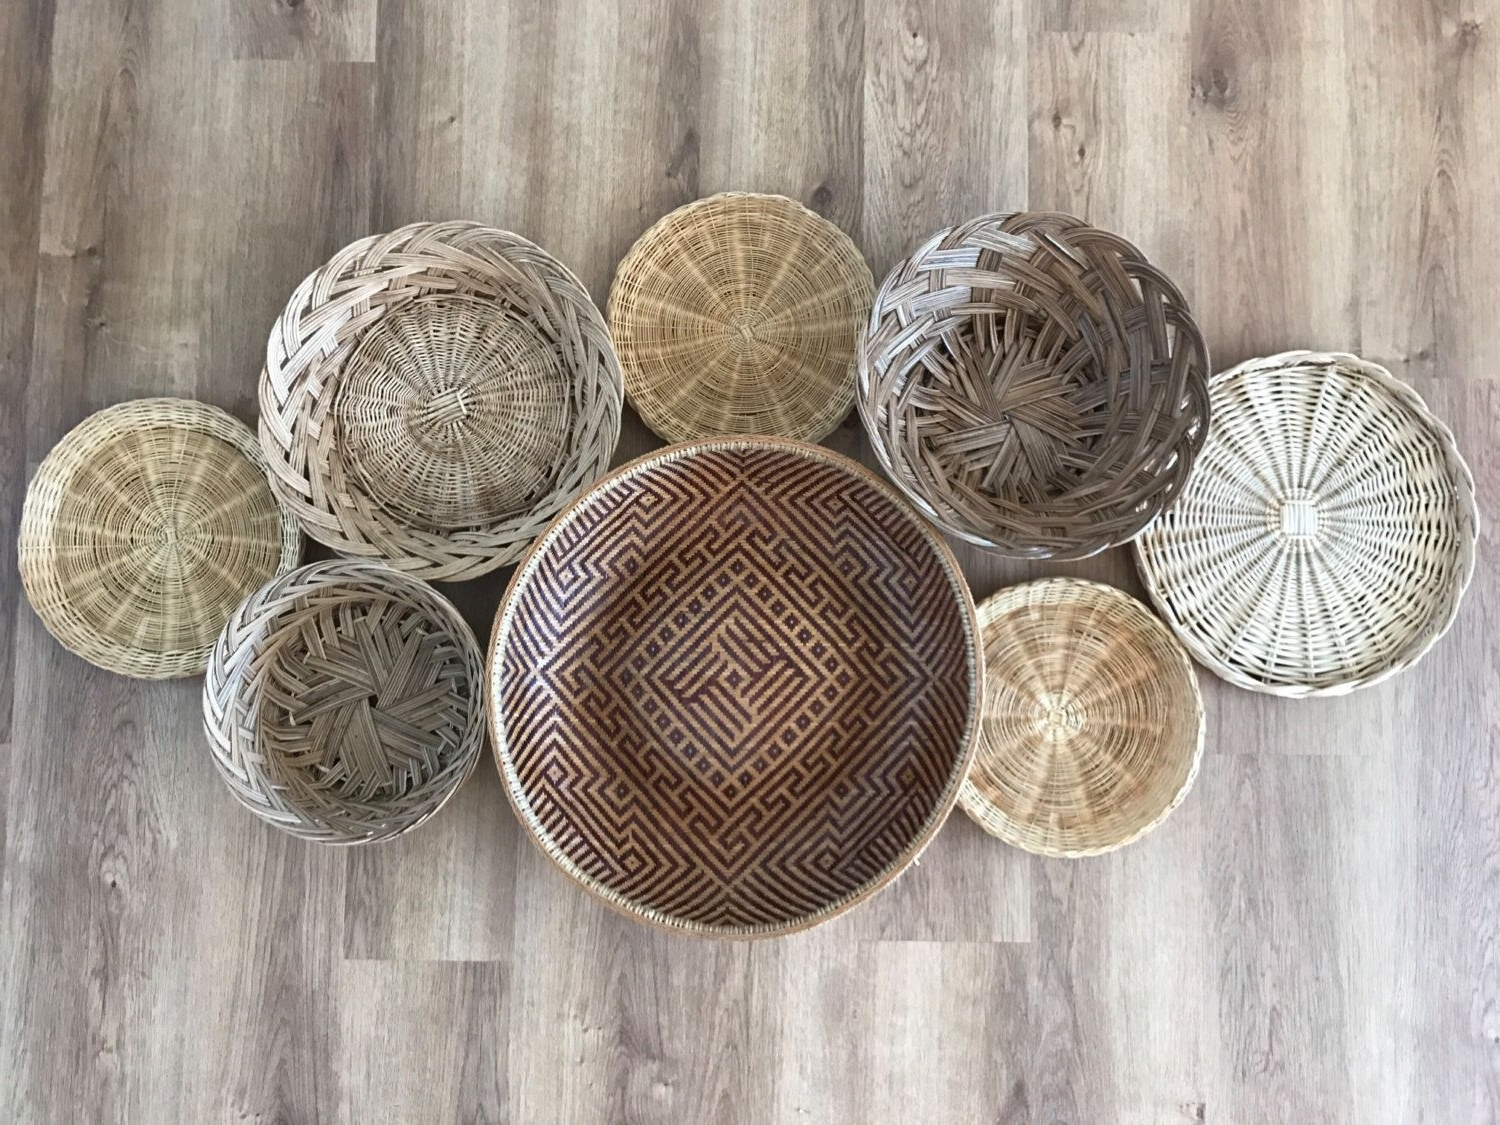 Woven Basket Wall Art In Most Popular Boho Vintage Set Of Wicker Rattan Woven Wall Hanging Baskets (View 14 of 20)